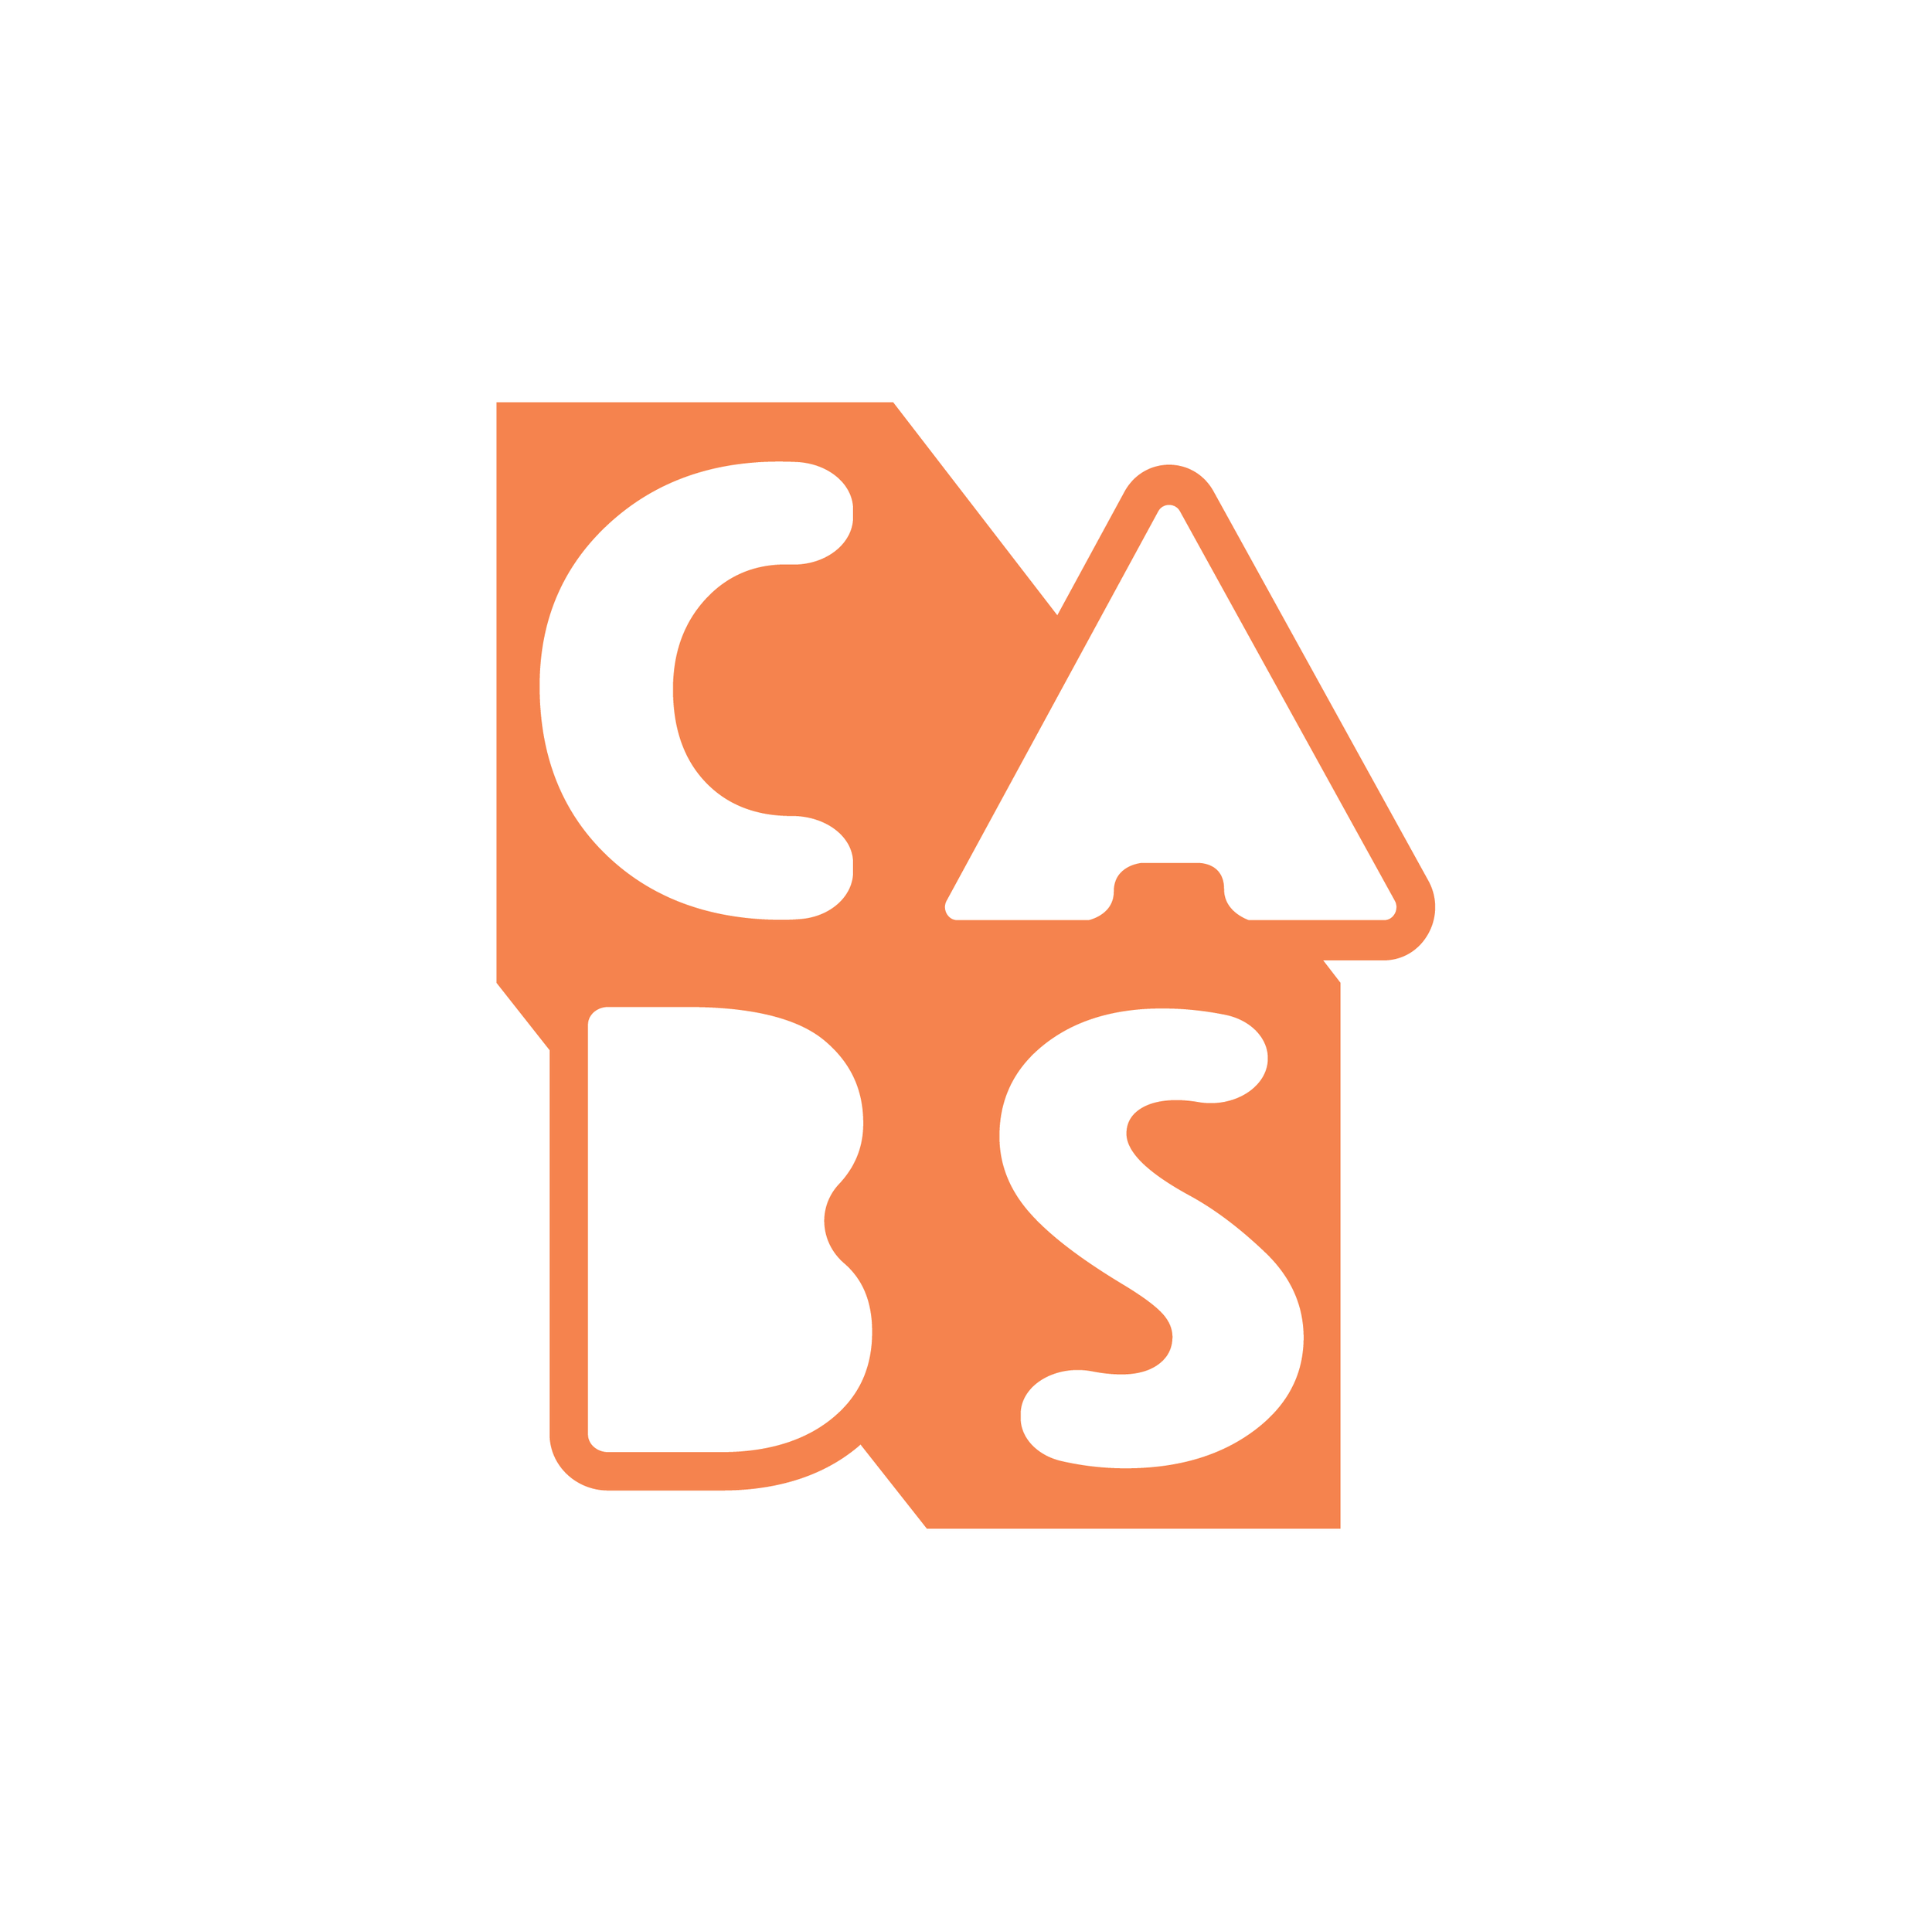 CABS-02.png